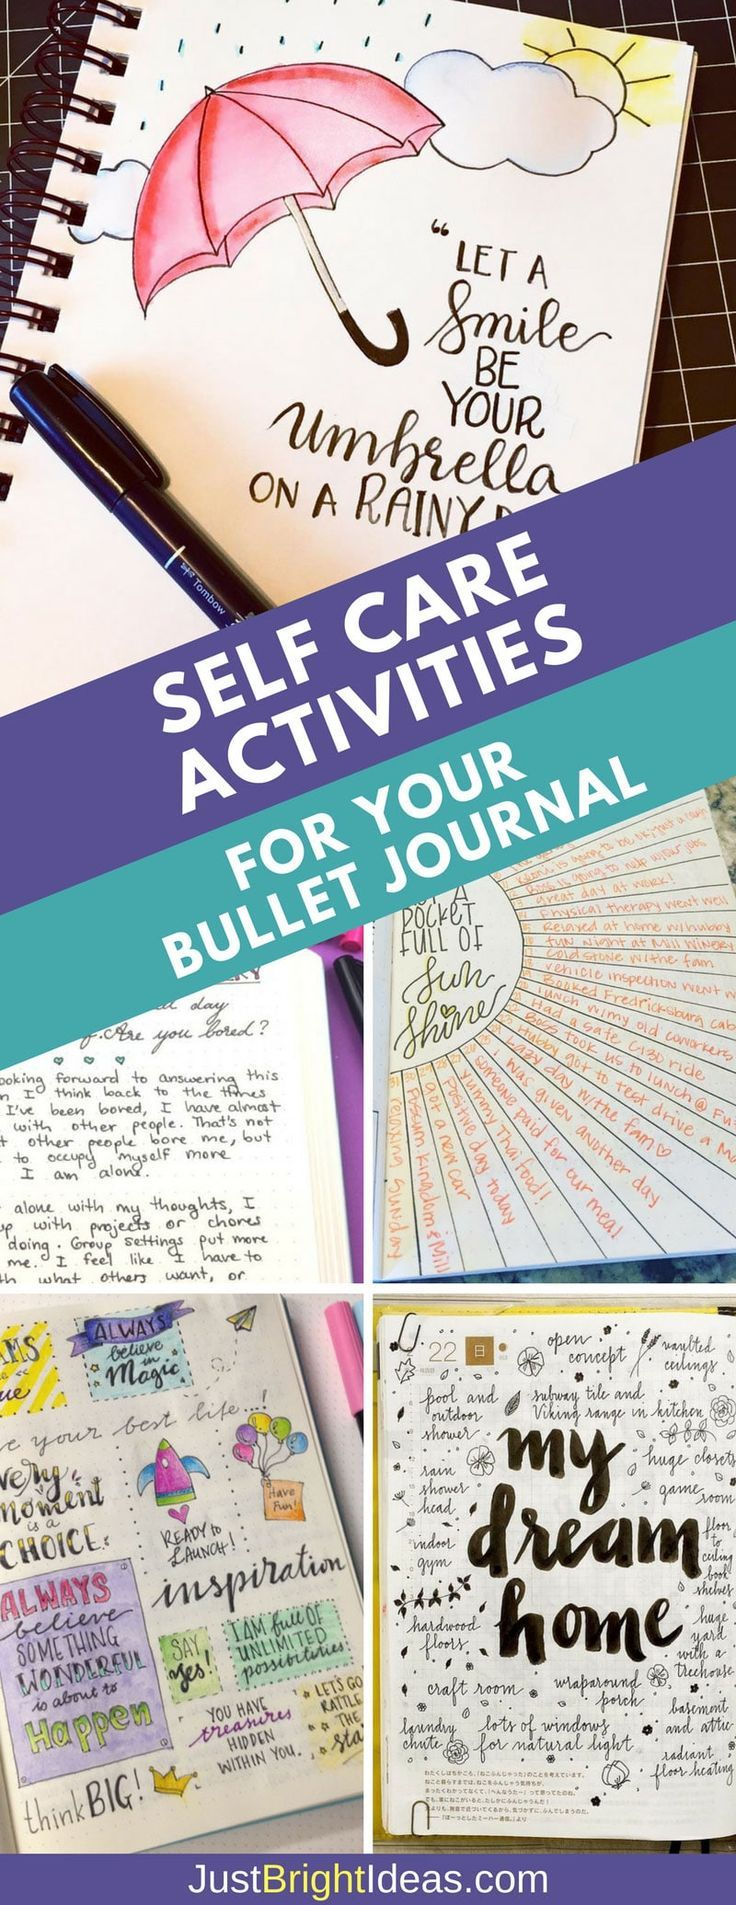 5 Examples of Self Care Activities You Can Do With Your Bullet JournalTaniya